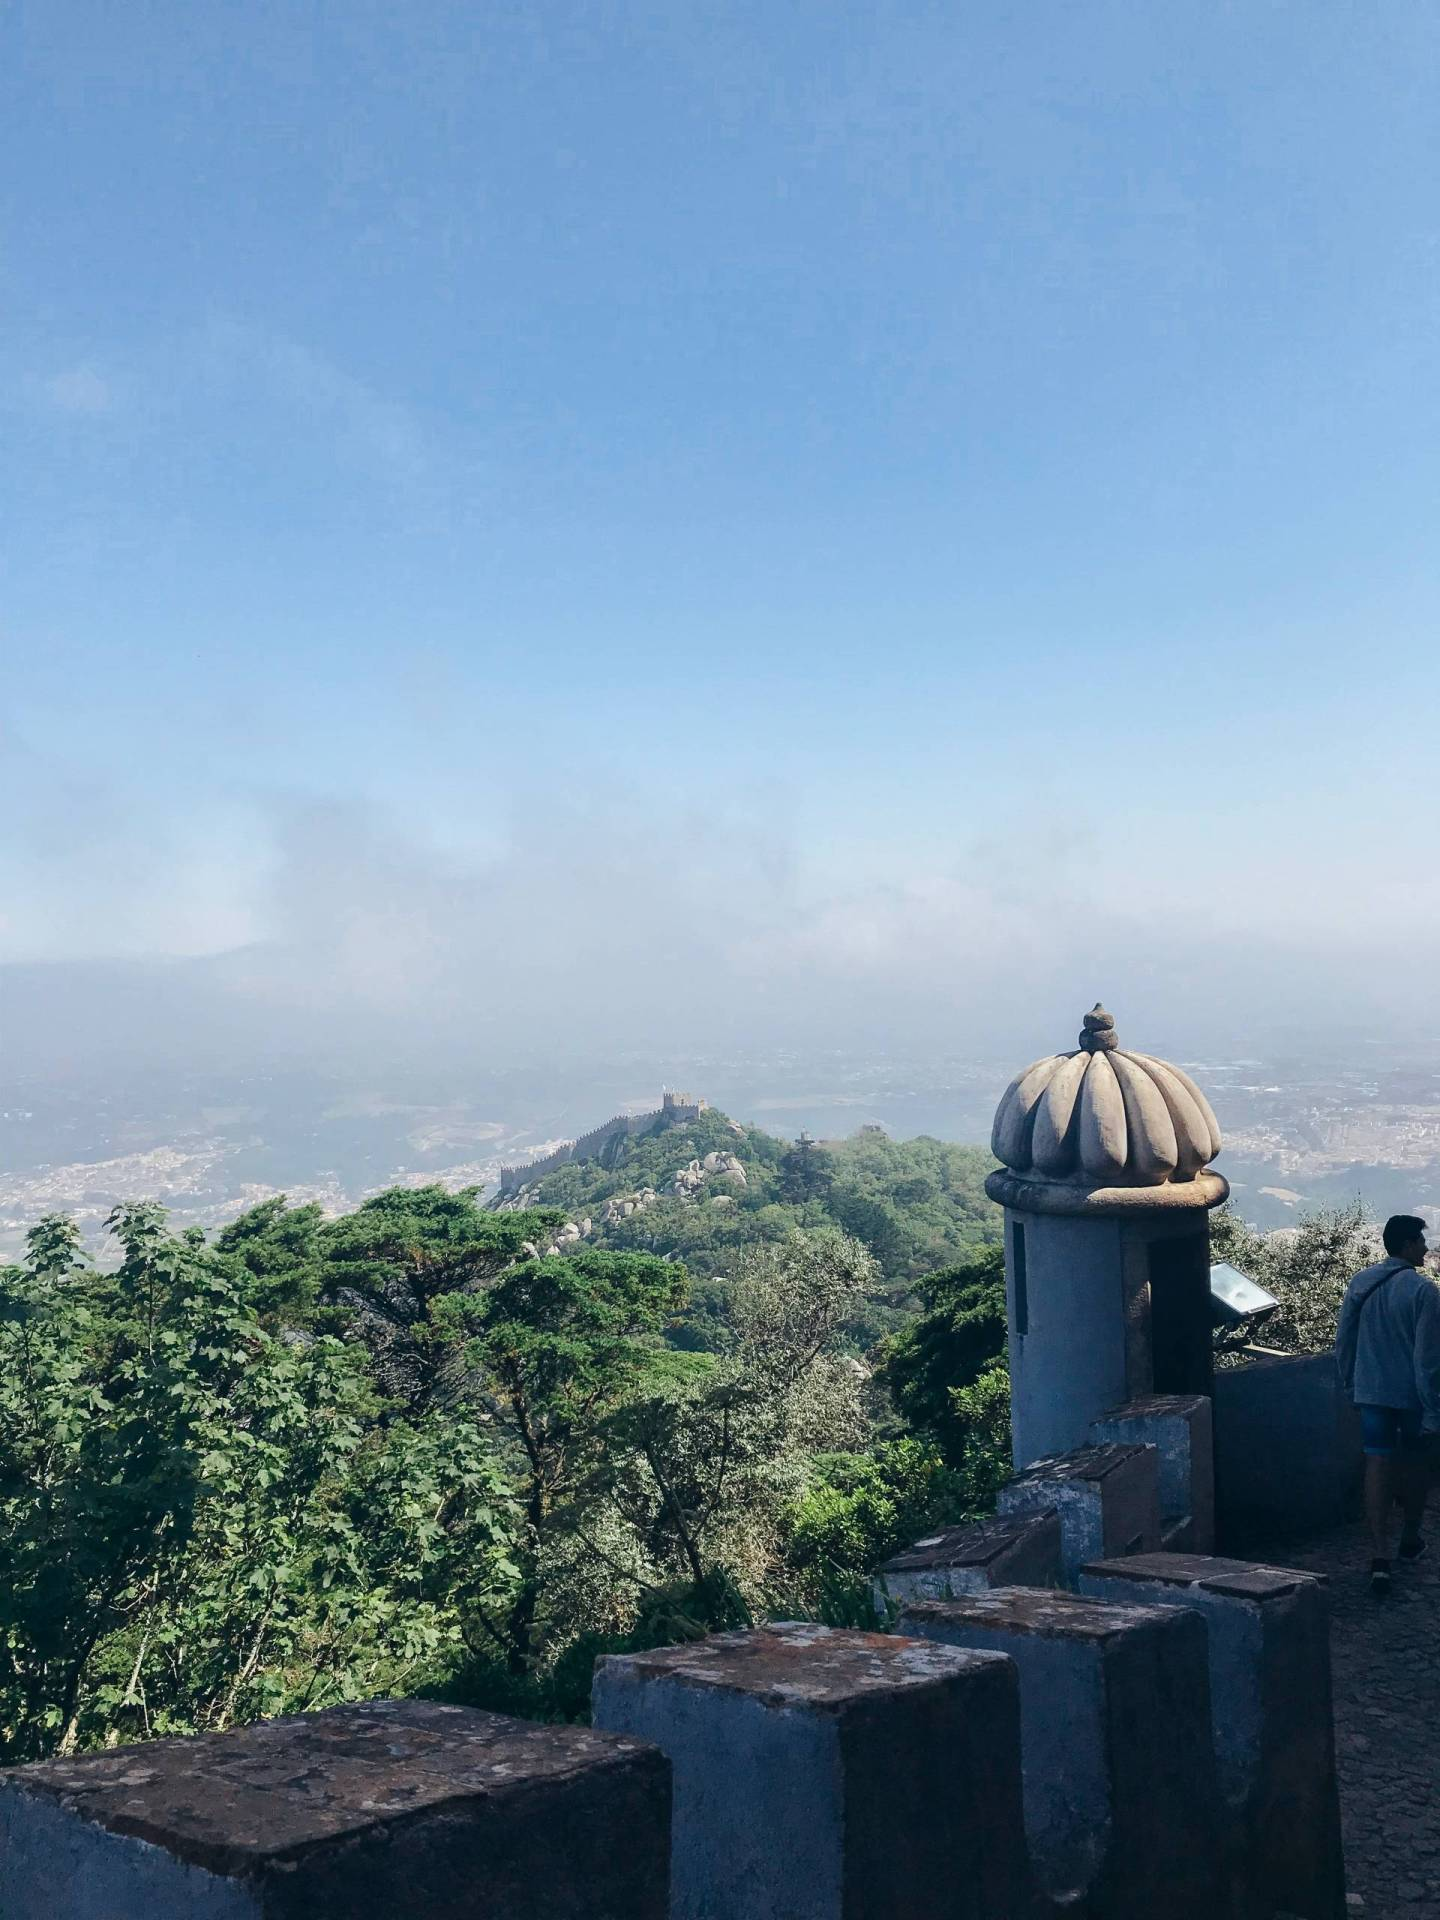 Two easy day trips to take from Lisbon, Portugal, including Sintra